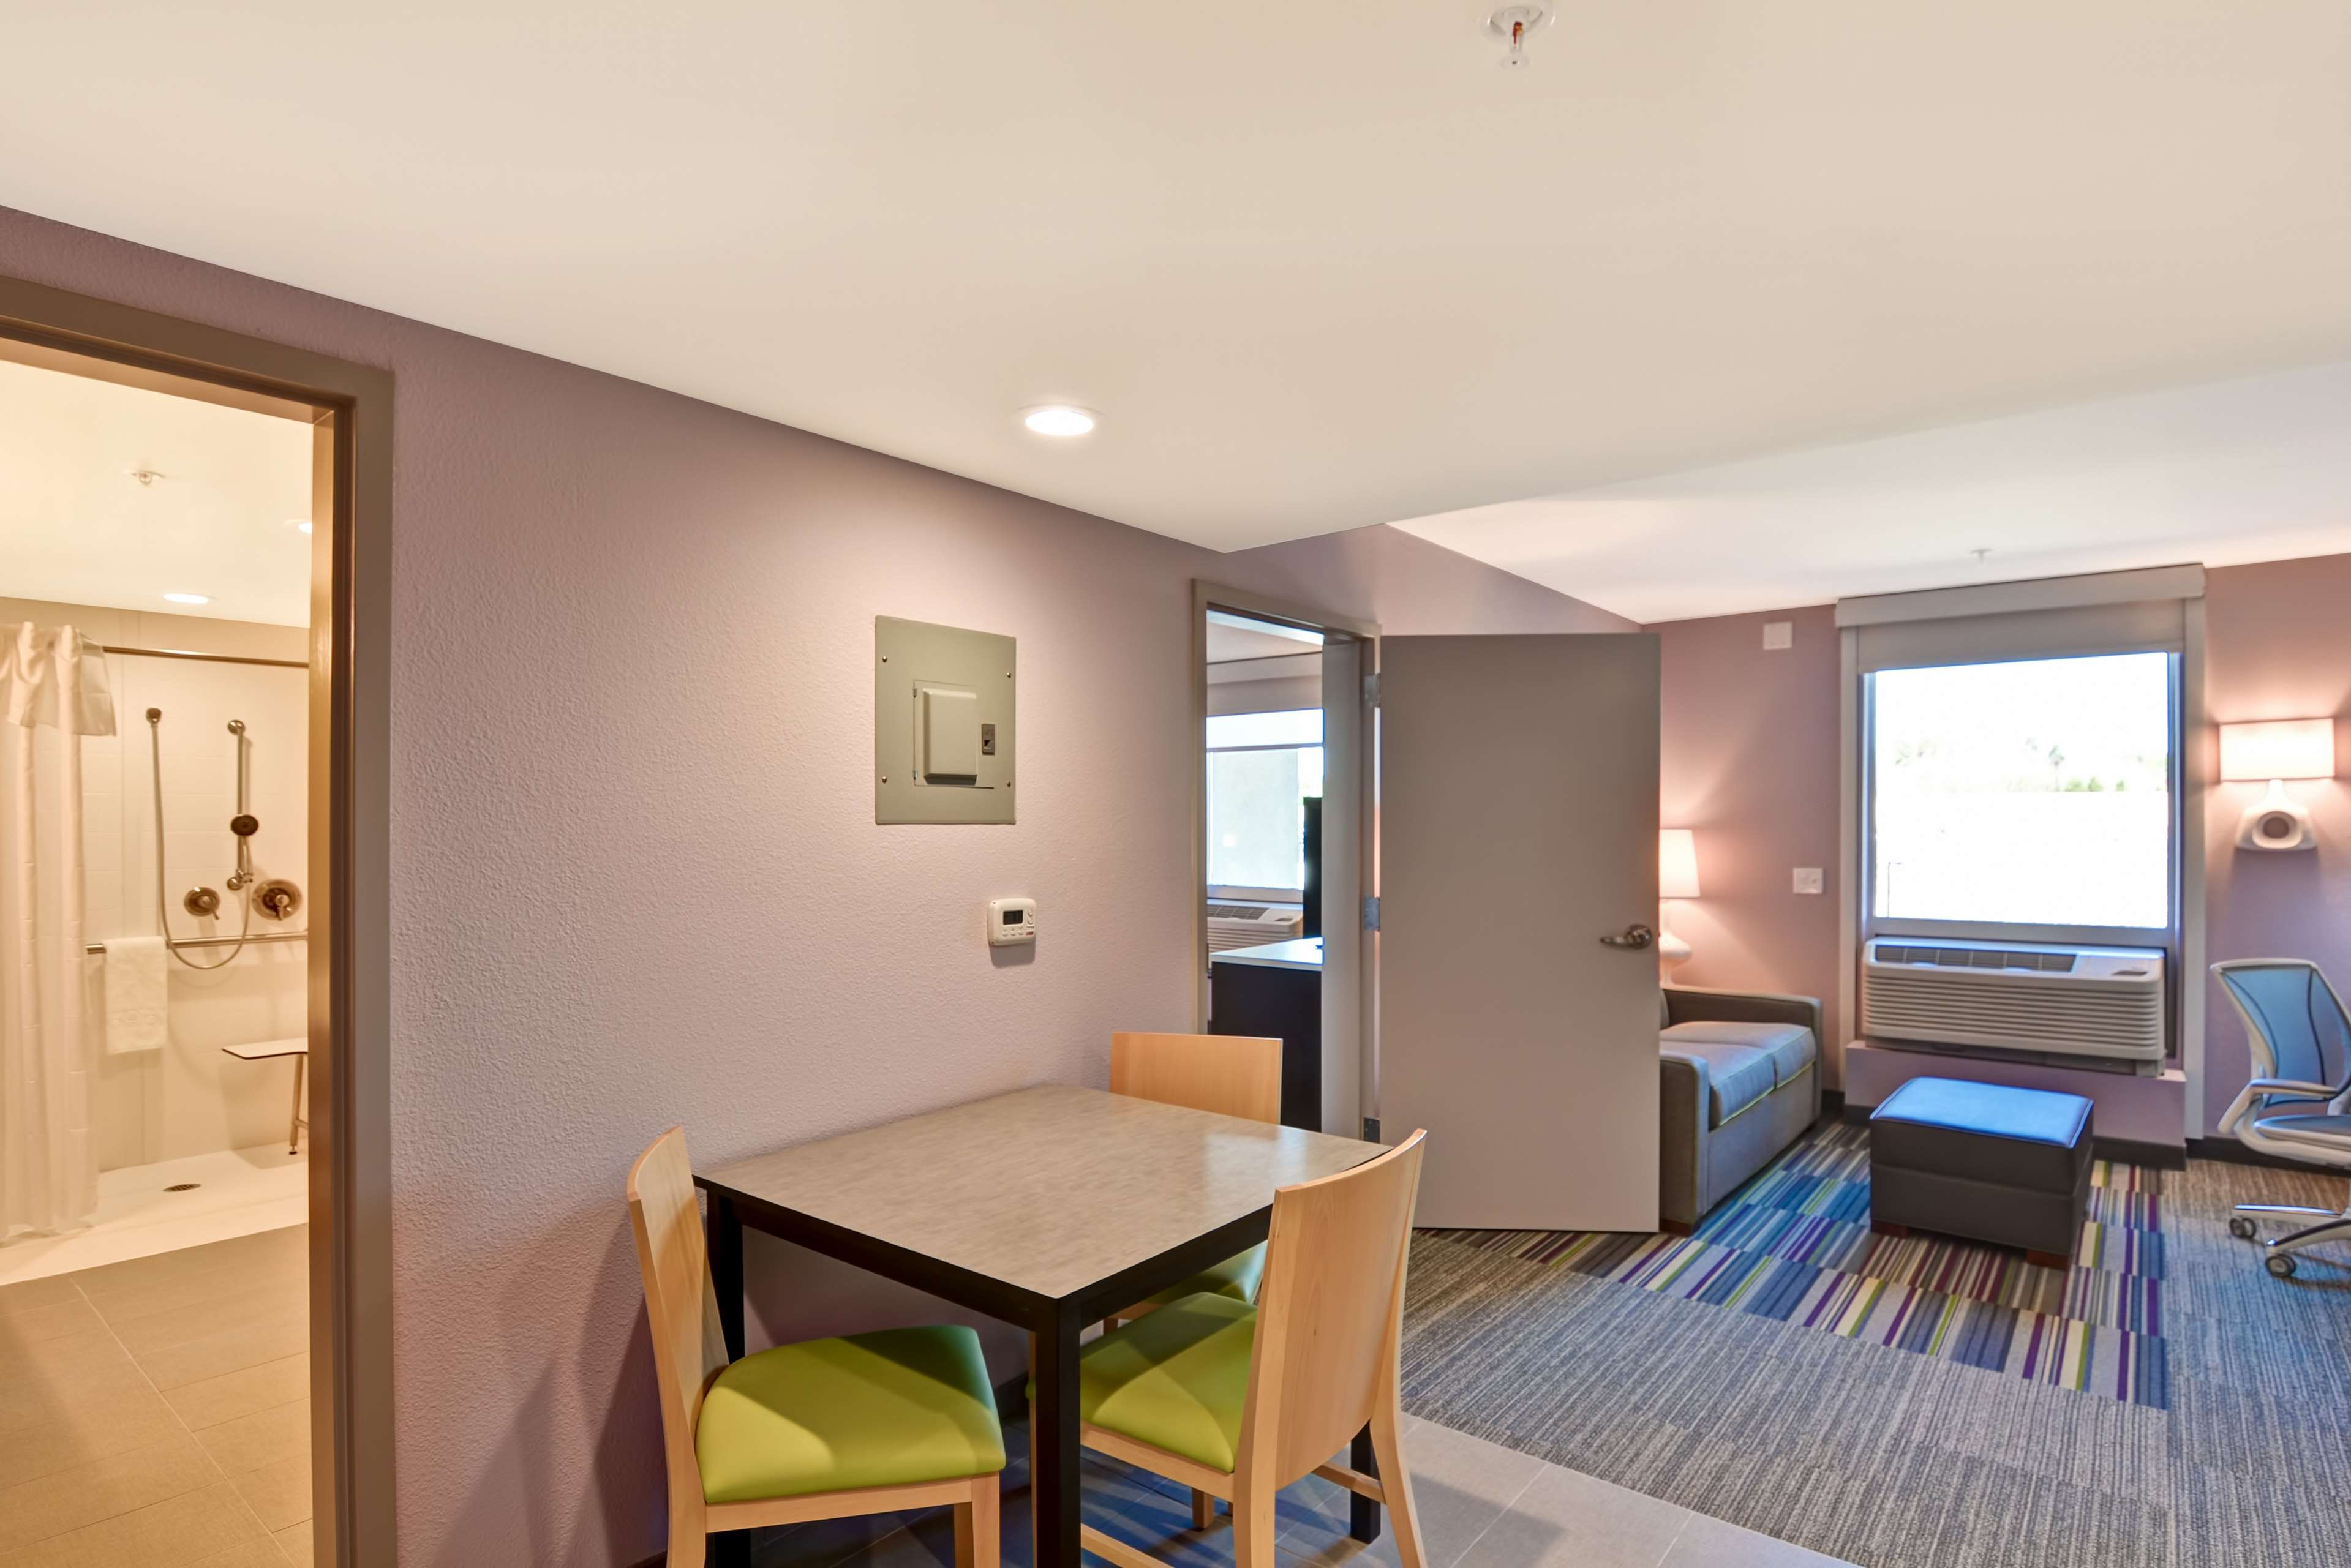 Home2 Suites by Hilton Winston-Salem Hanes Mall image 38